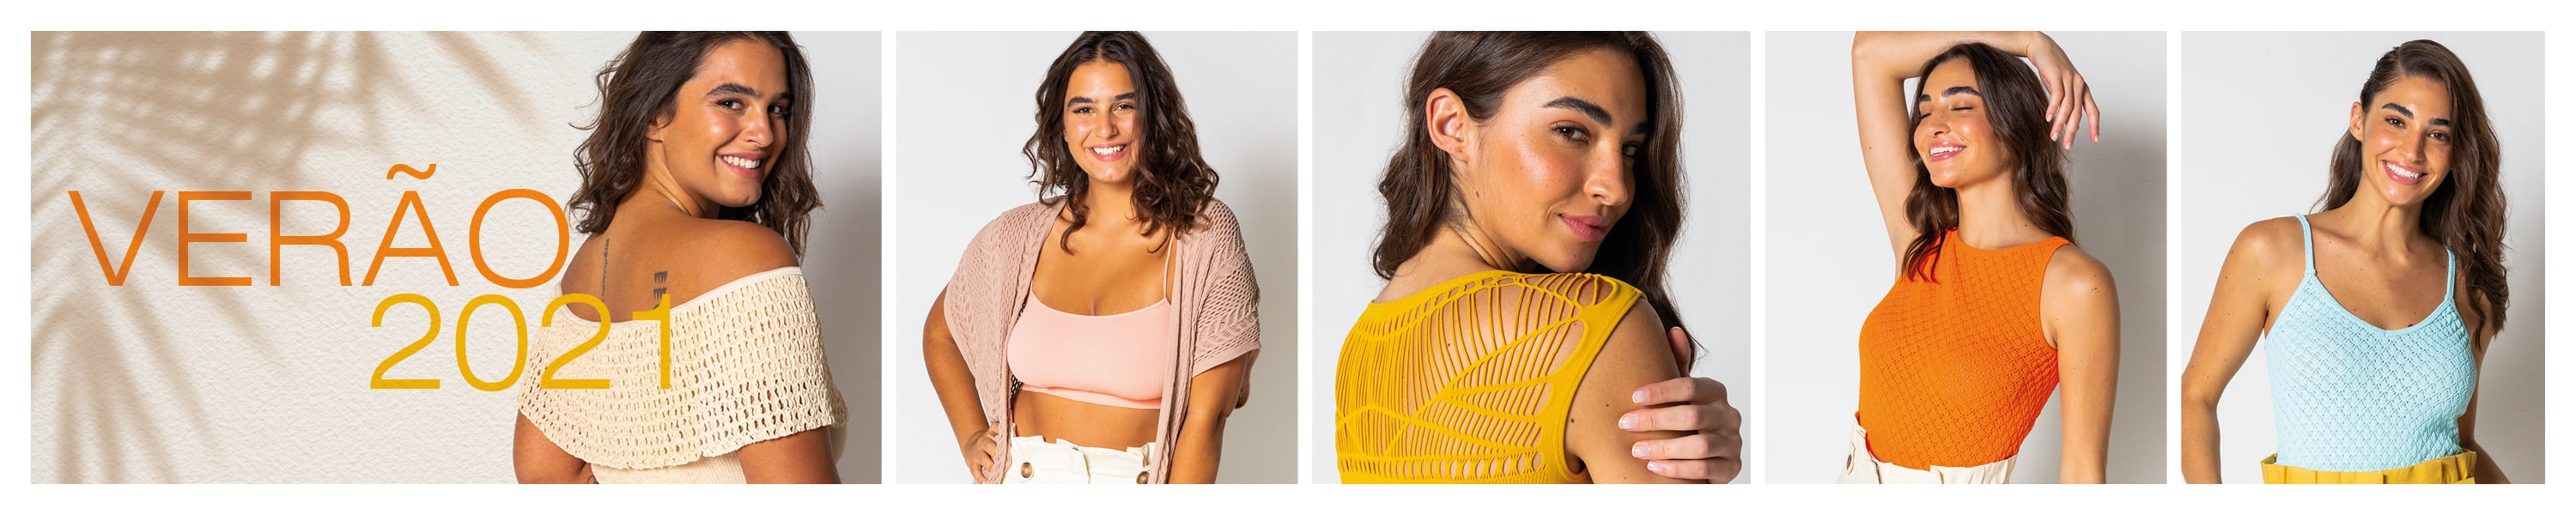 banner lookbook